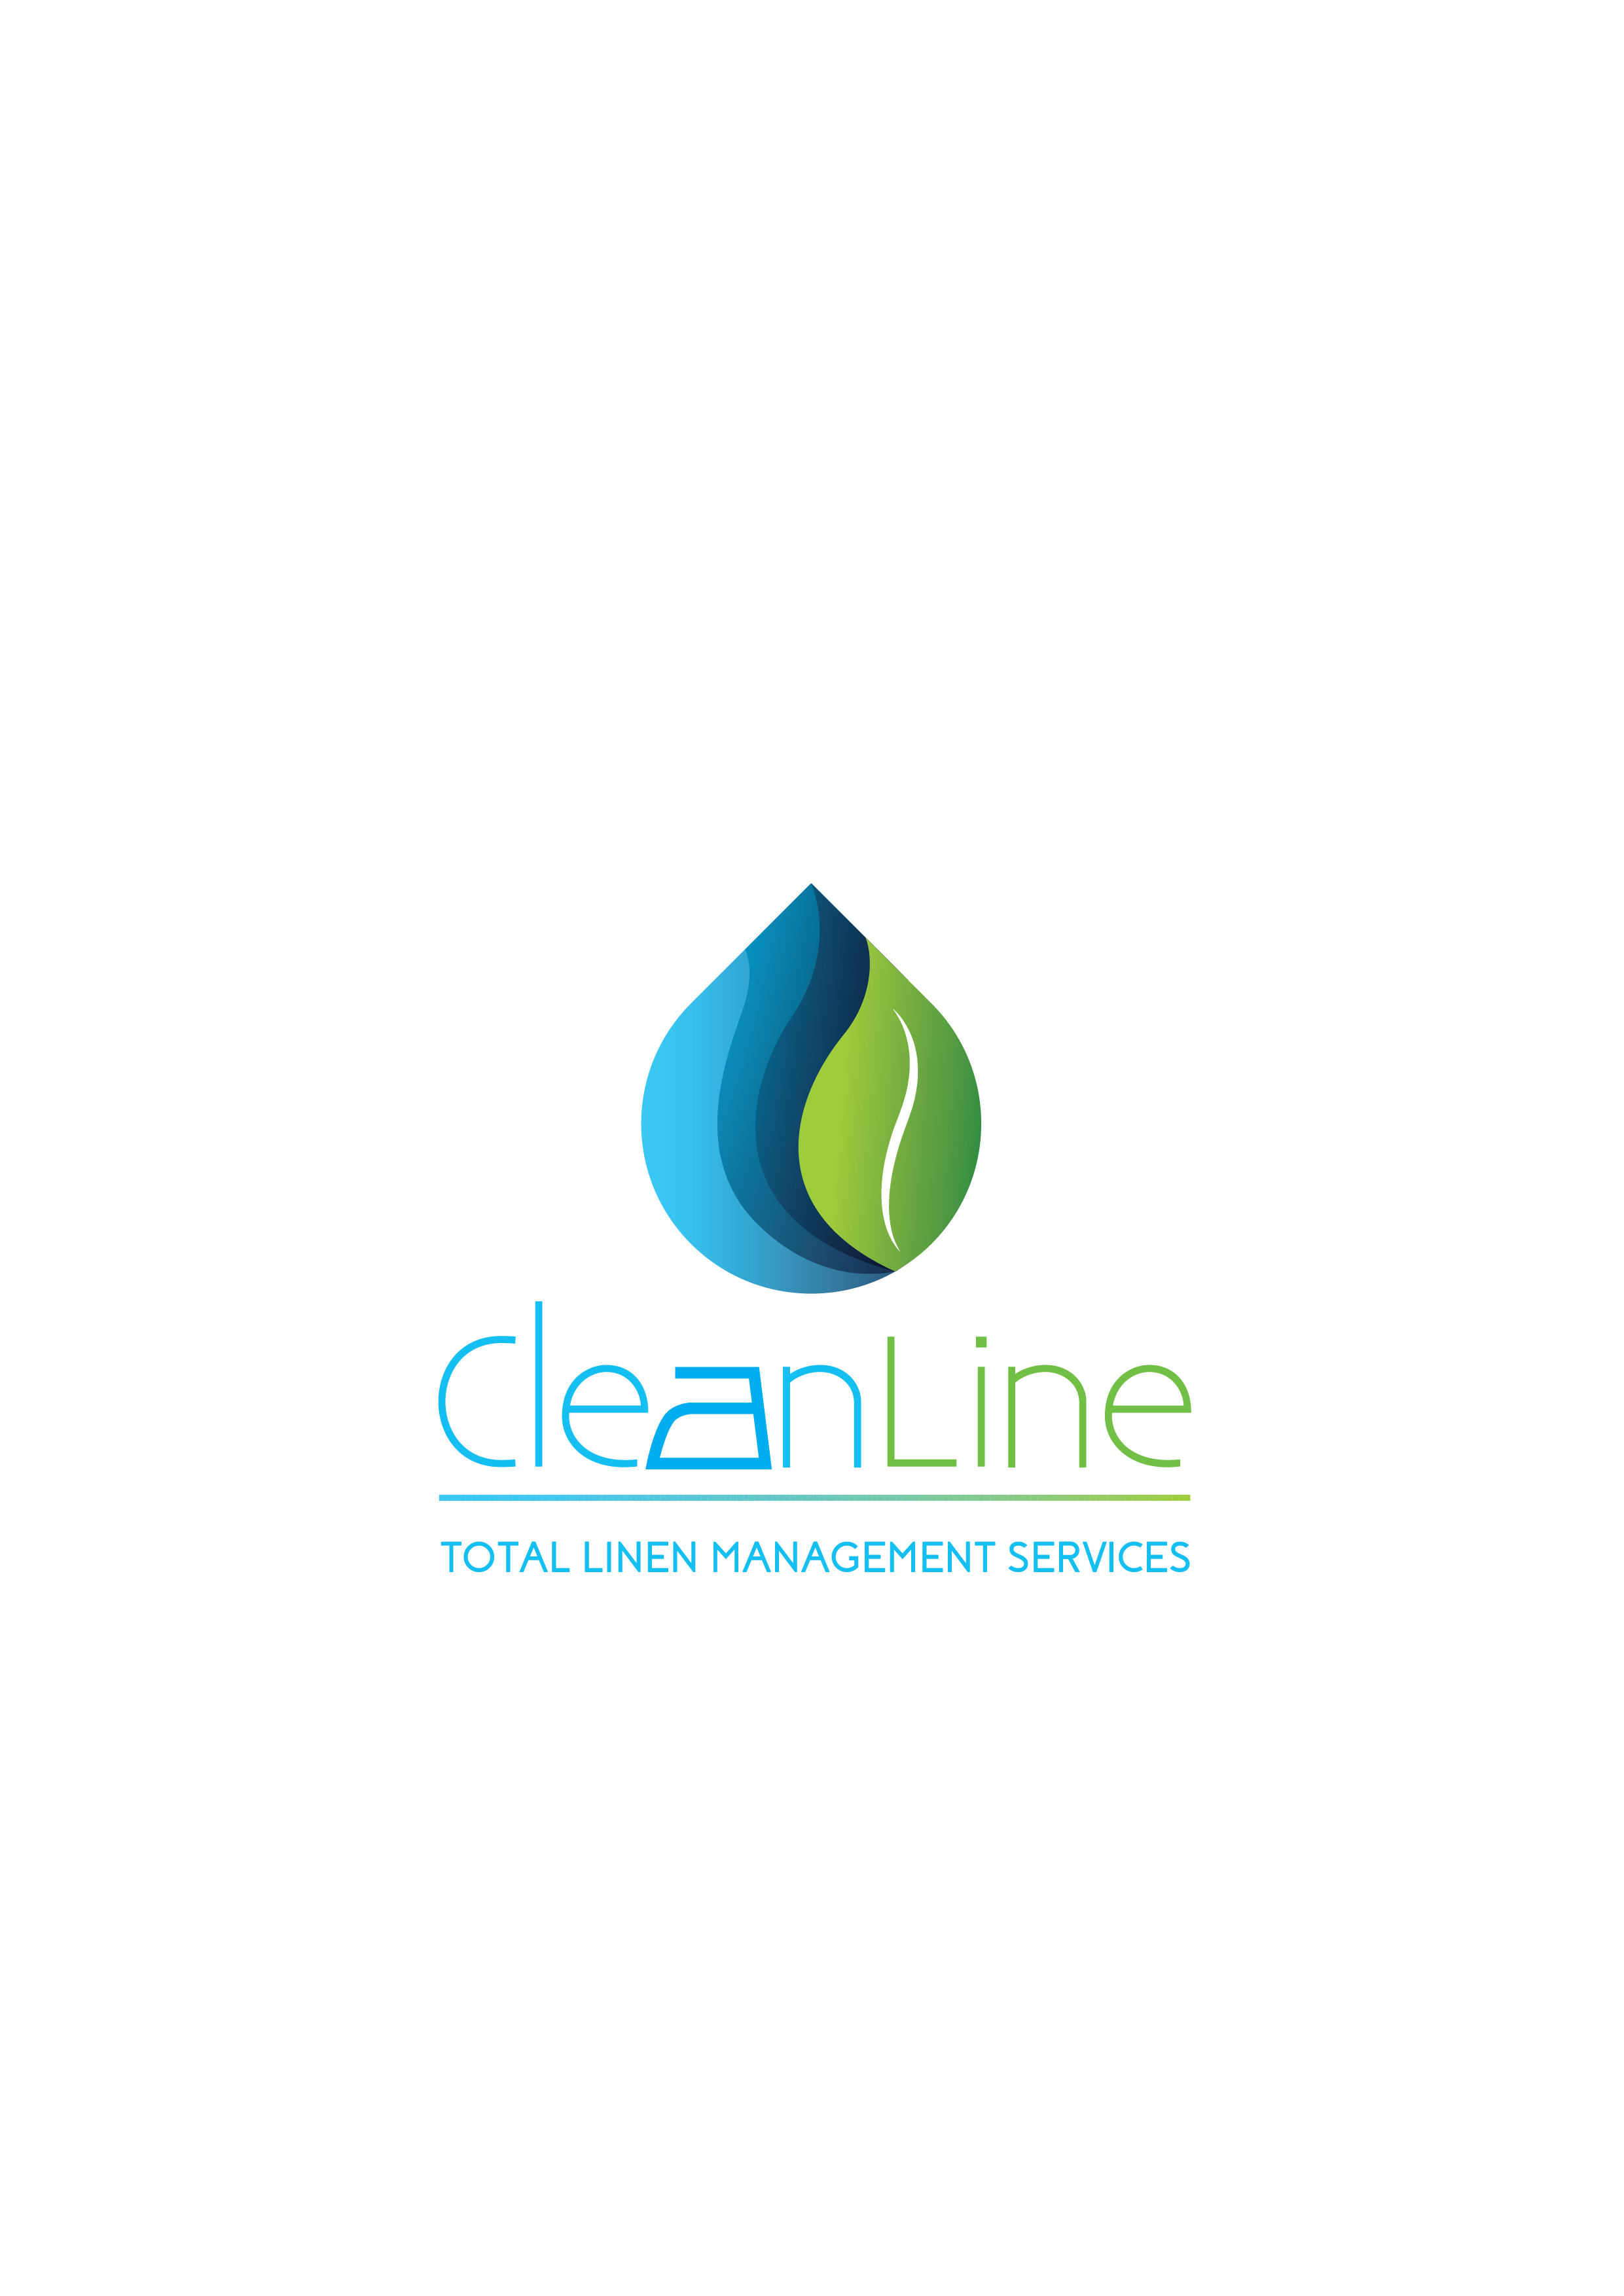 Cleanline Linen Management Pvt Ltd